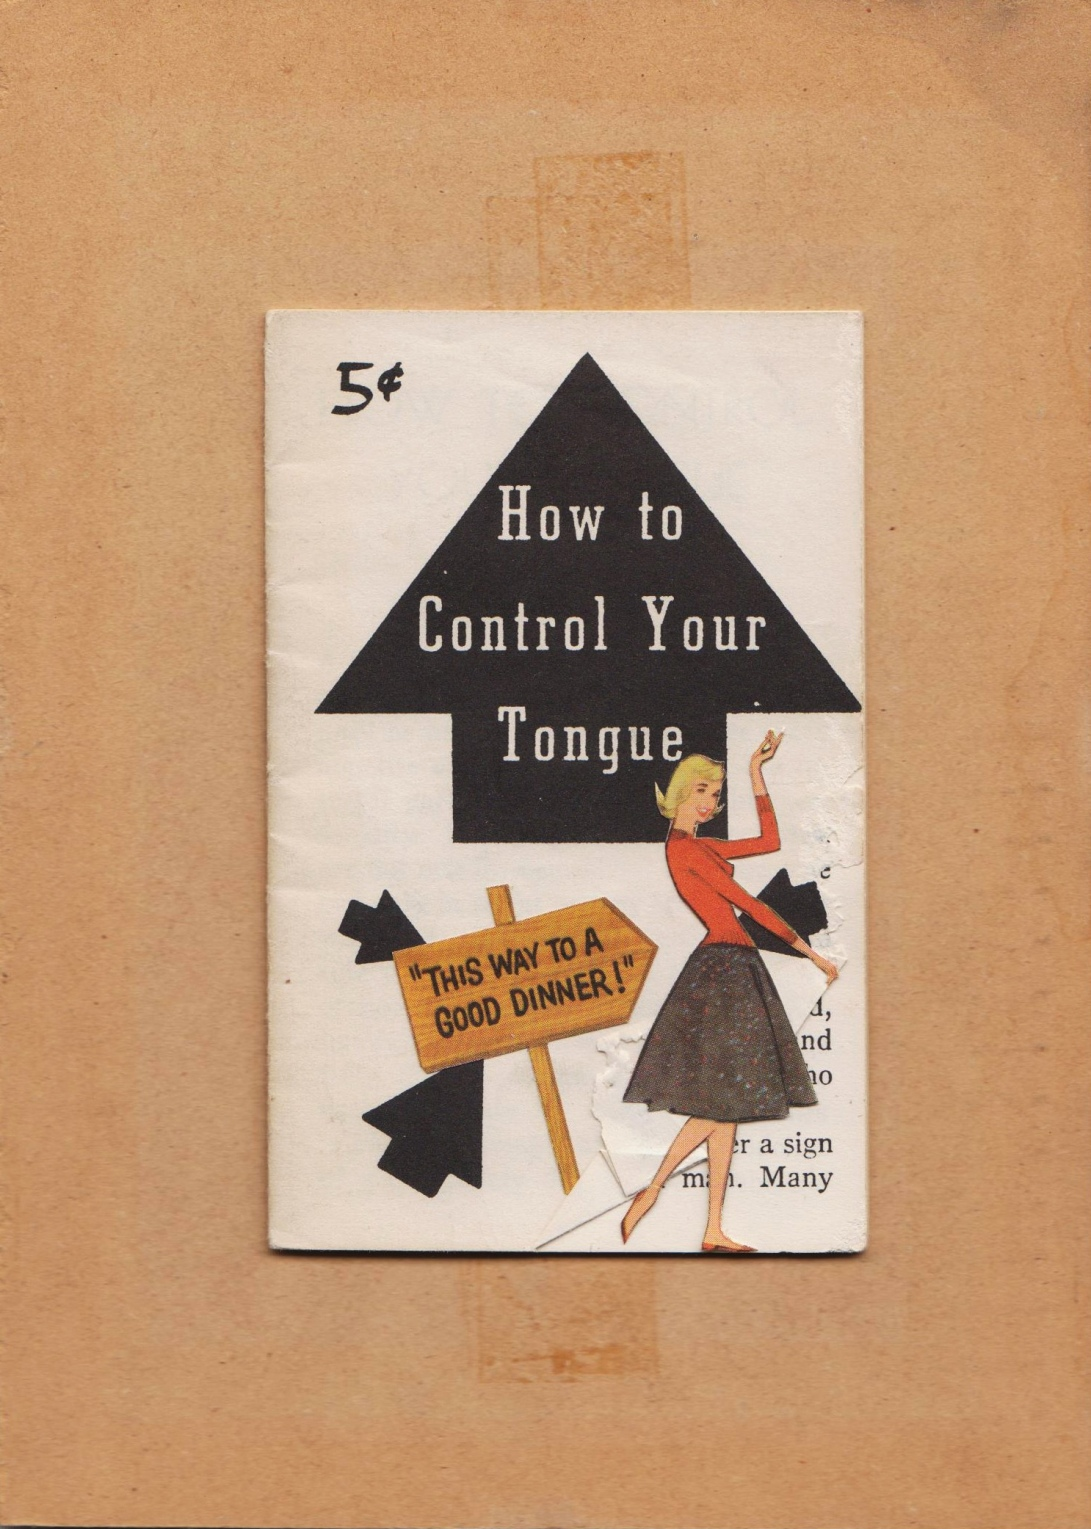 How to Control Your Tongue